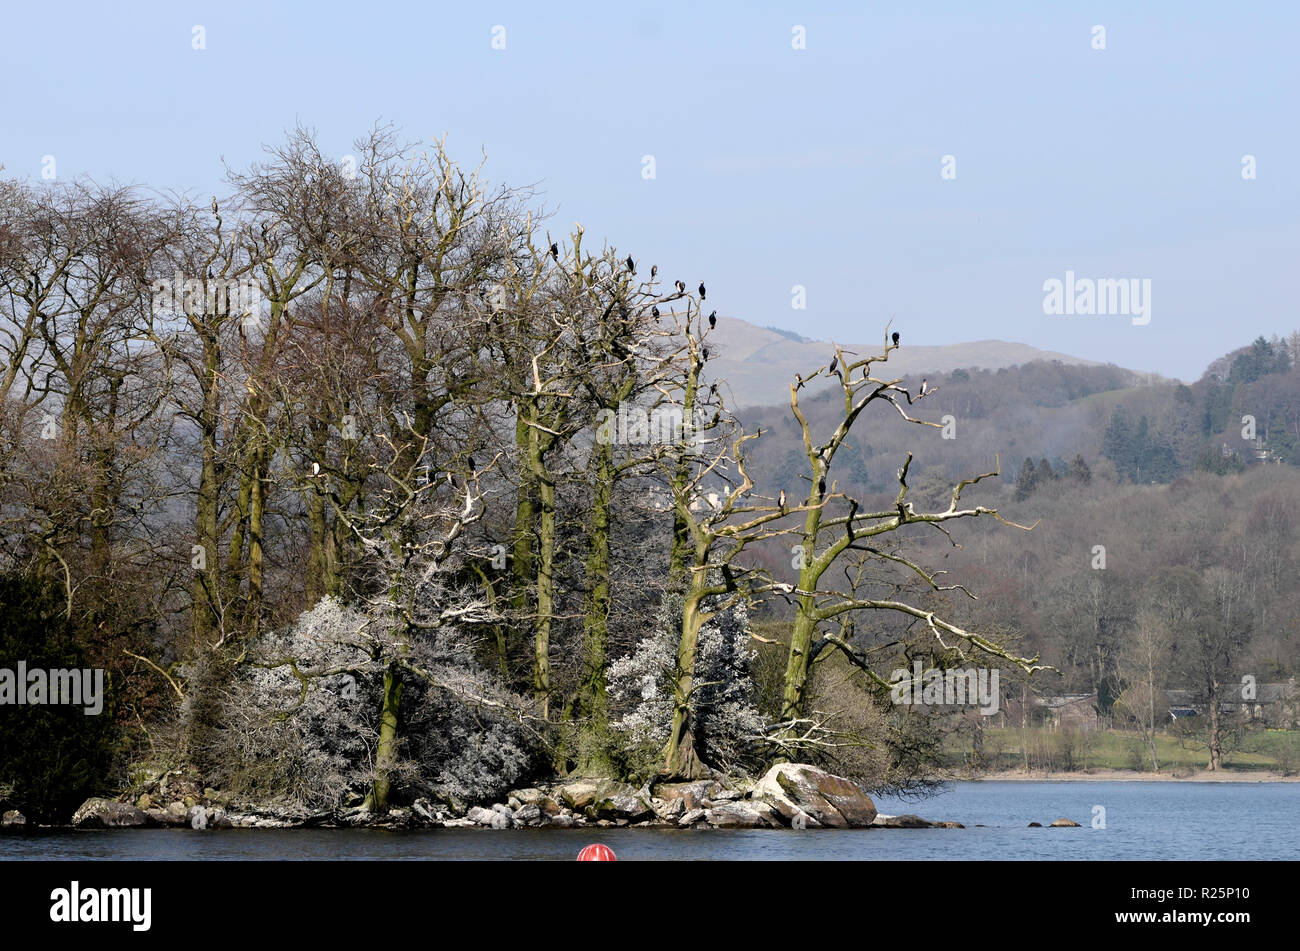 Cormorant colony in trees on Lady Holme island on Windermere in the Lake District, UK. - Stock Image